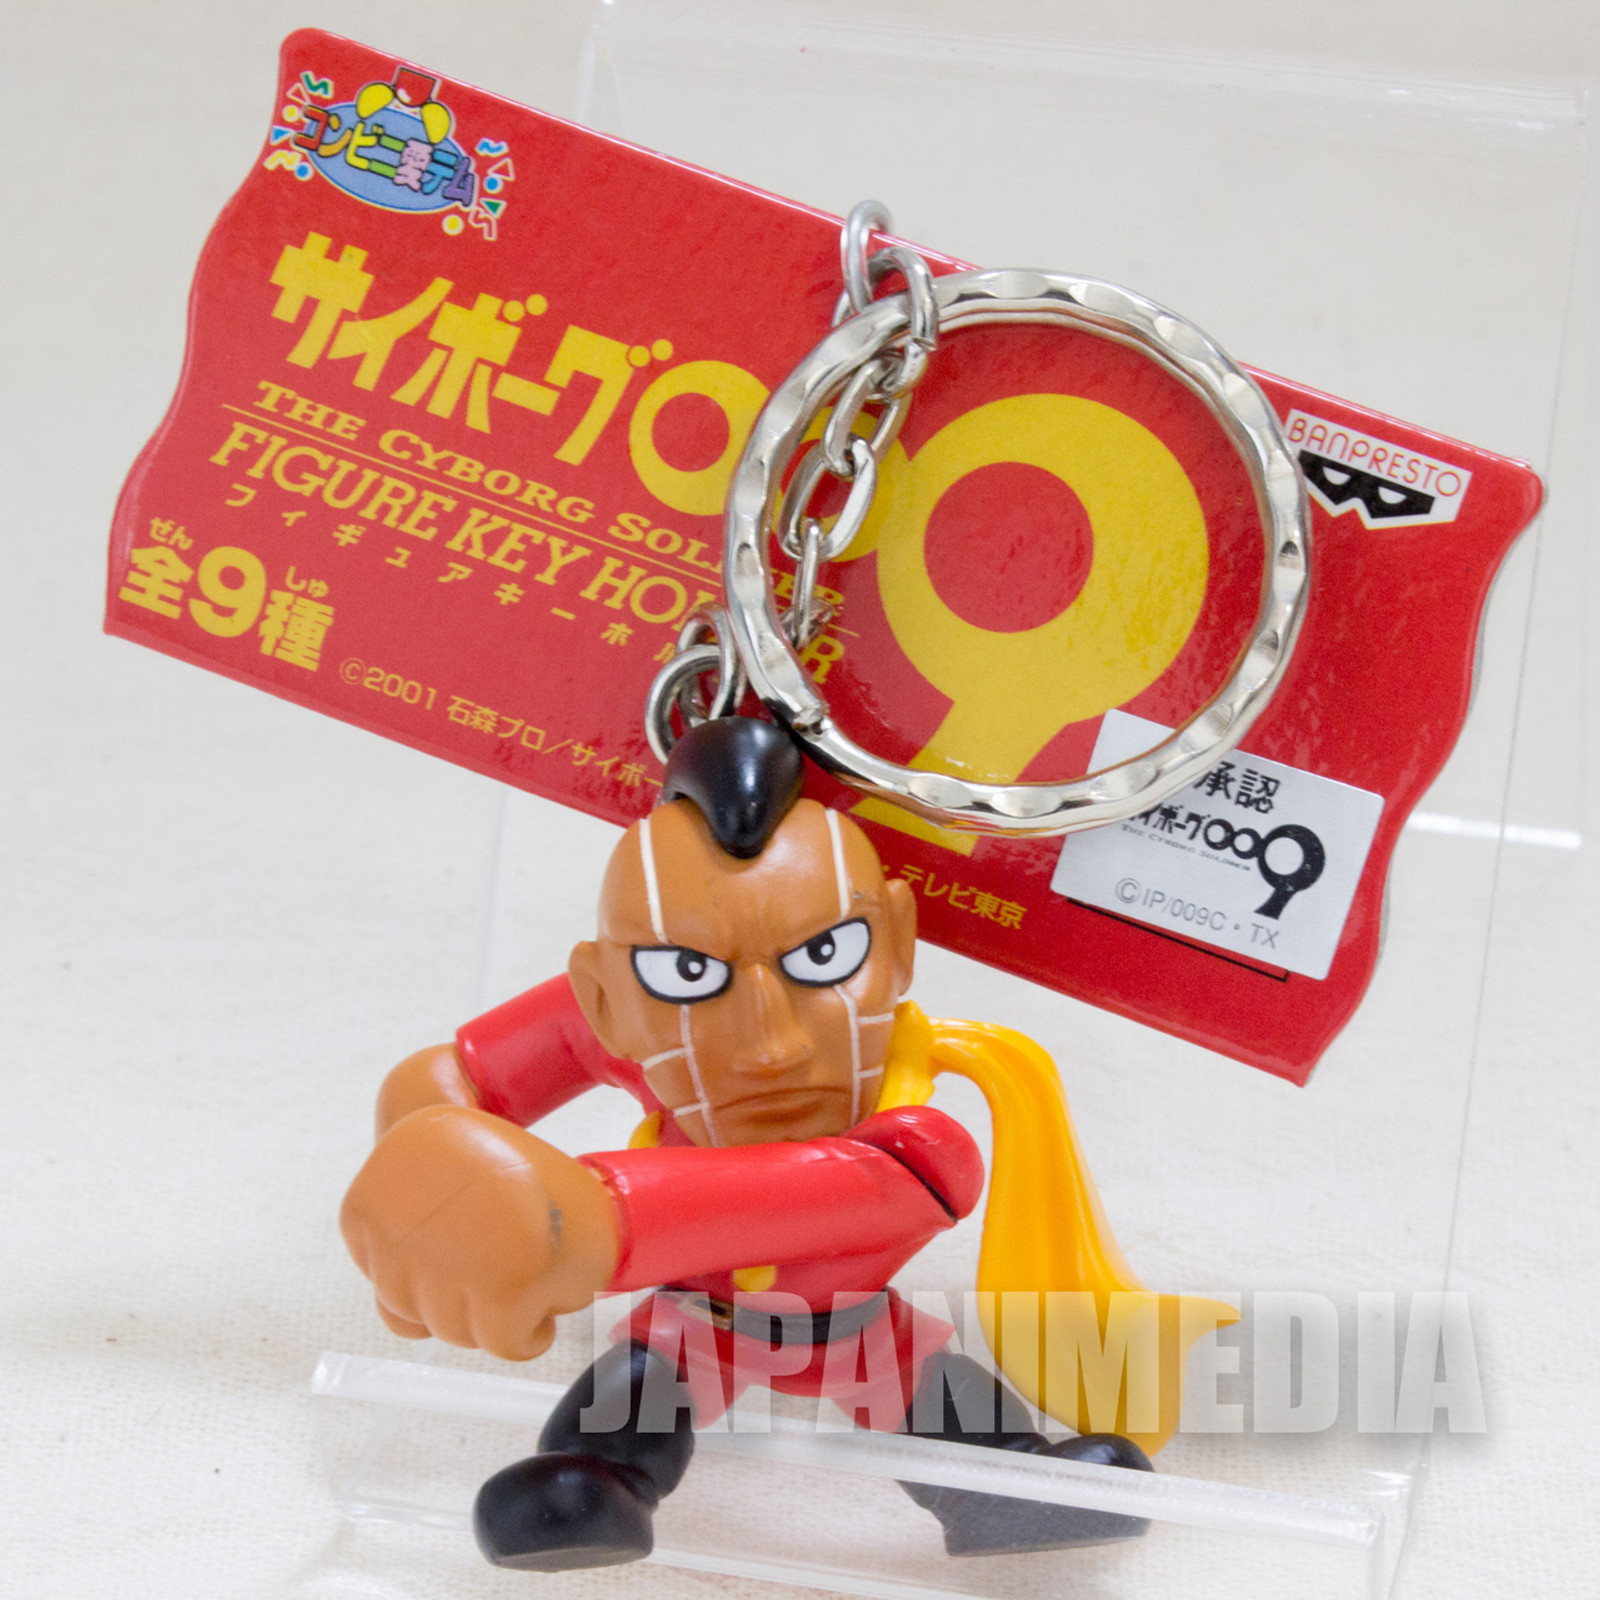 Cyborg 009 Geronimo Jr. 005 Figure Keychain JAPAN ANIME